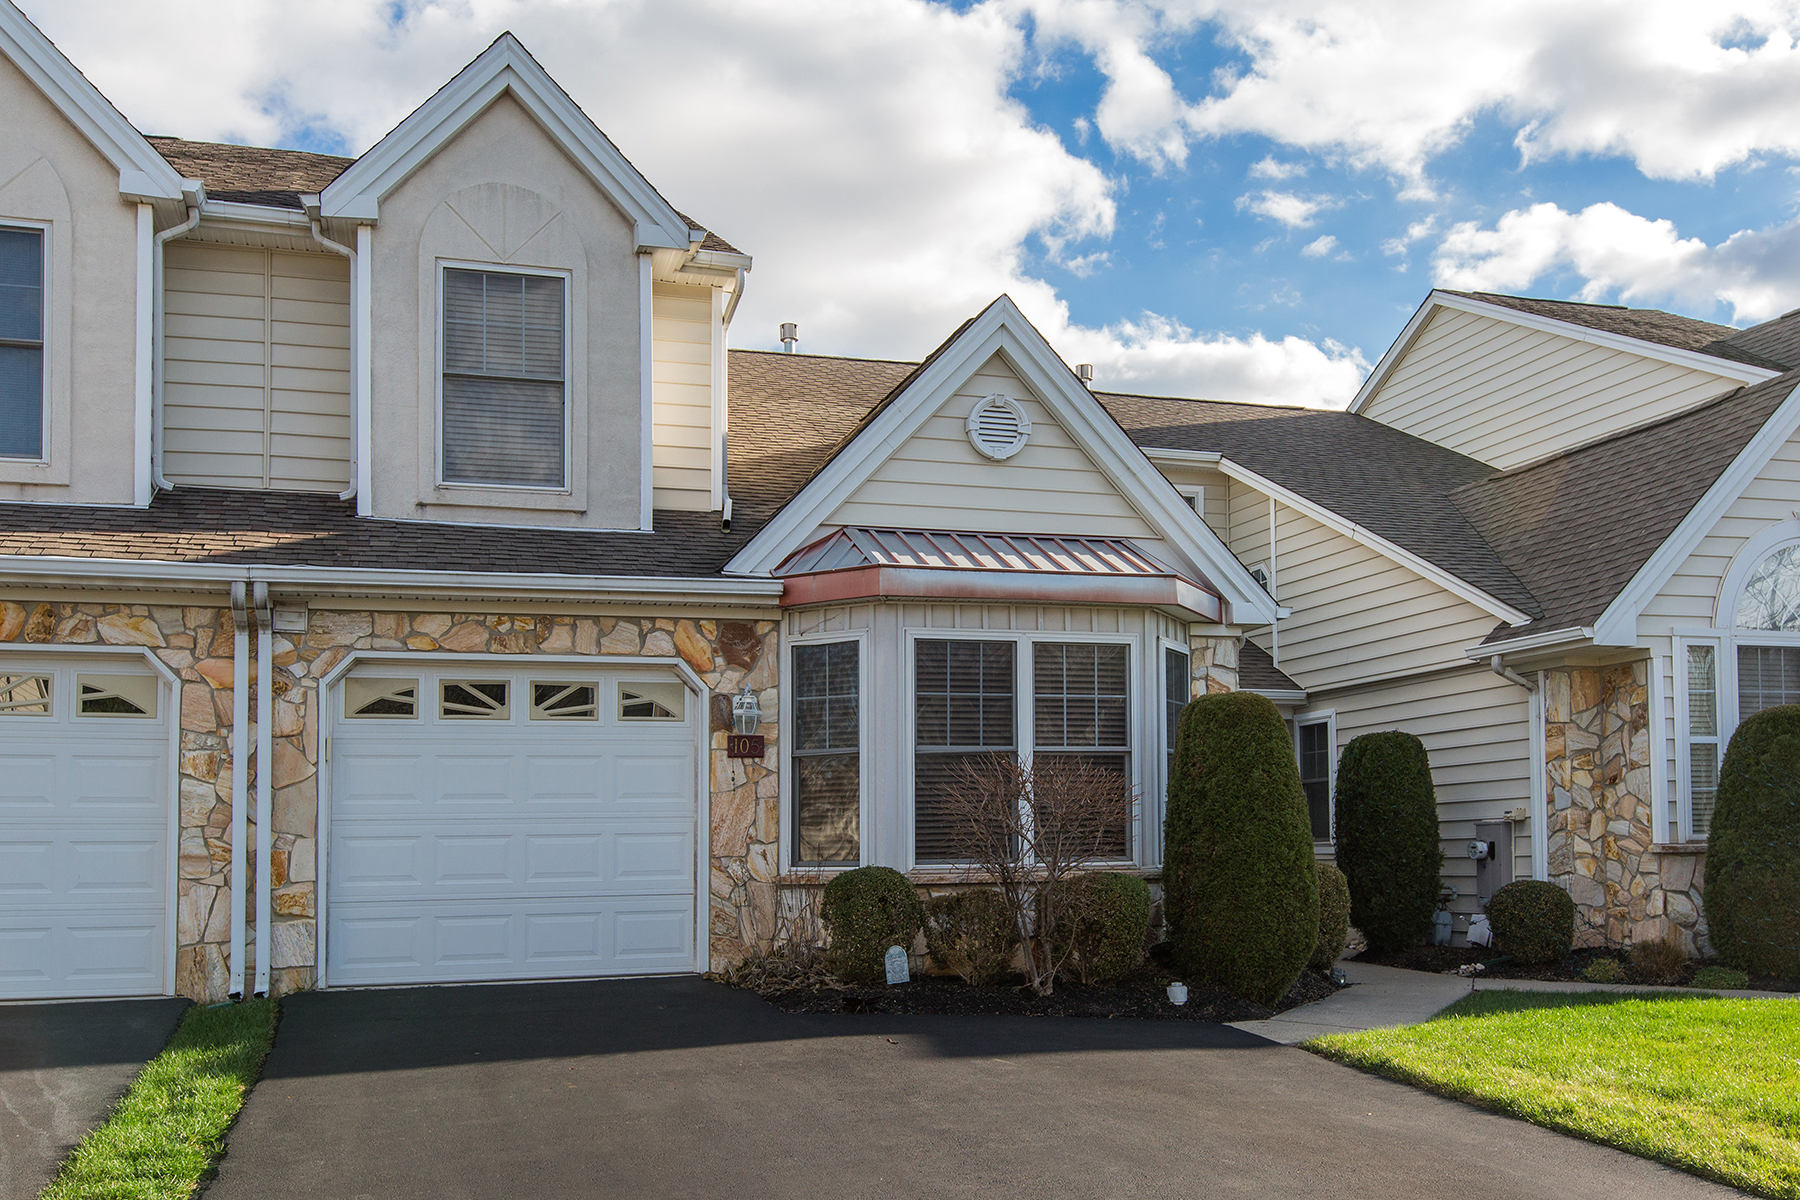 Townhouse for Sale at Ivyland, Pa 105 Grandview Drive Ivyland, Pennsylvania 18974 United States